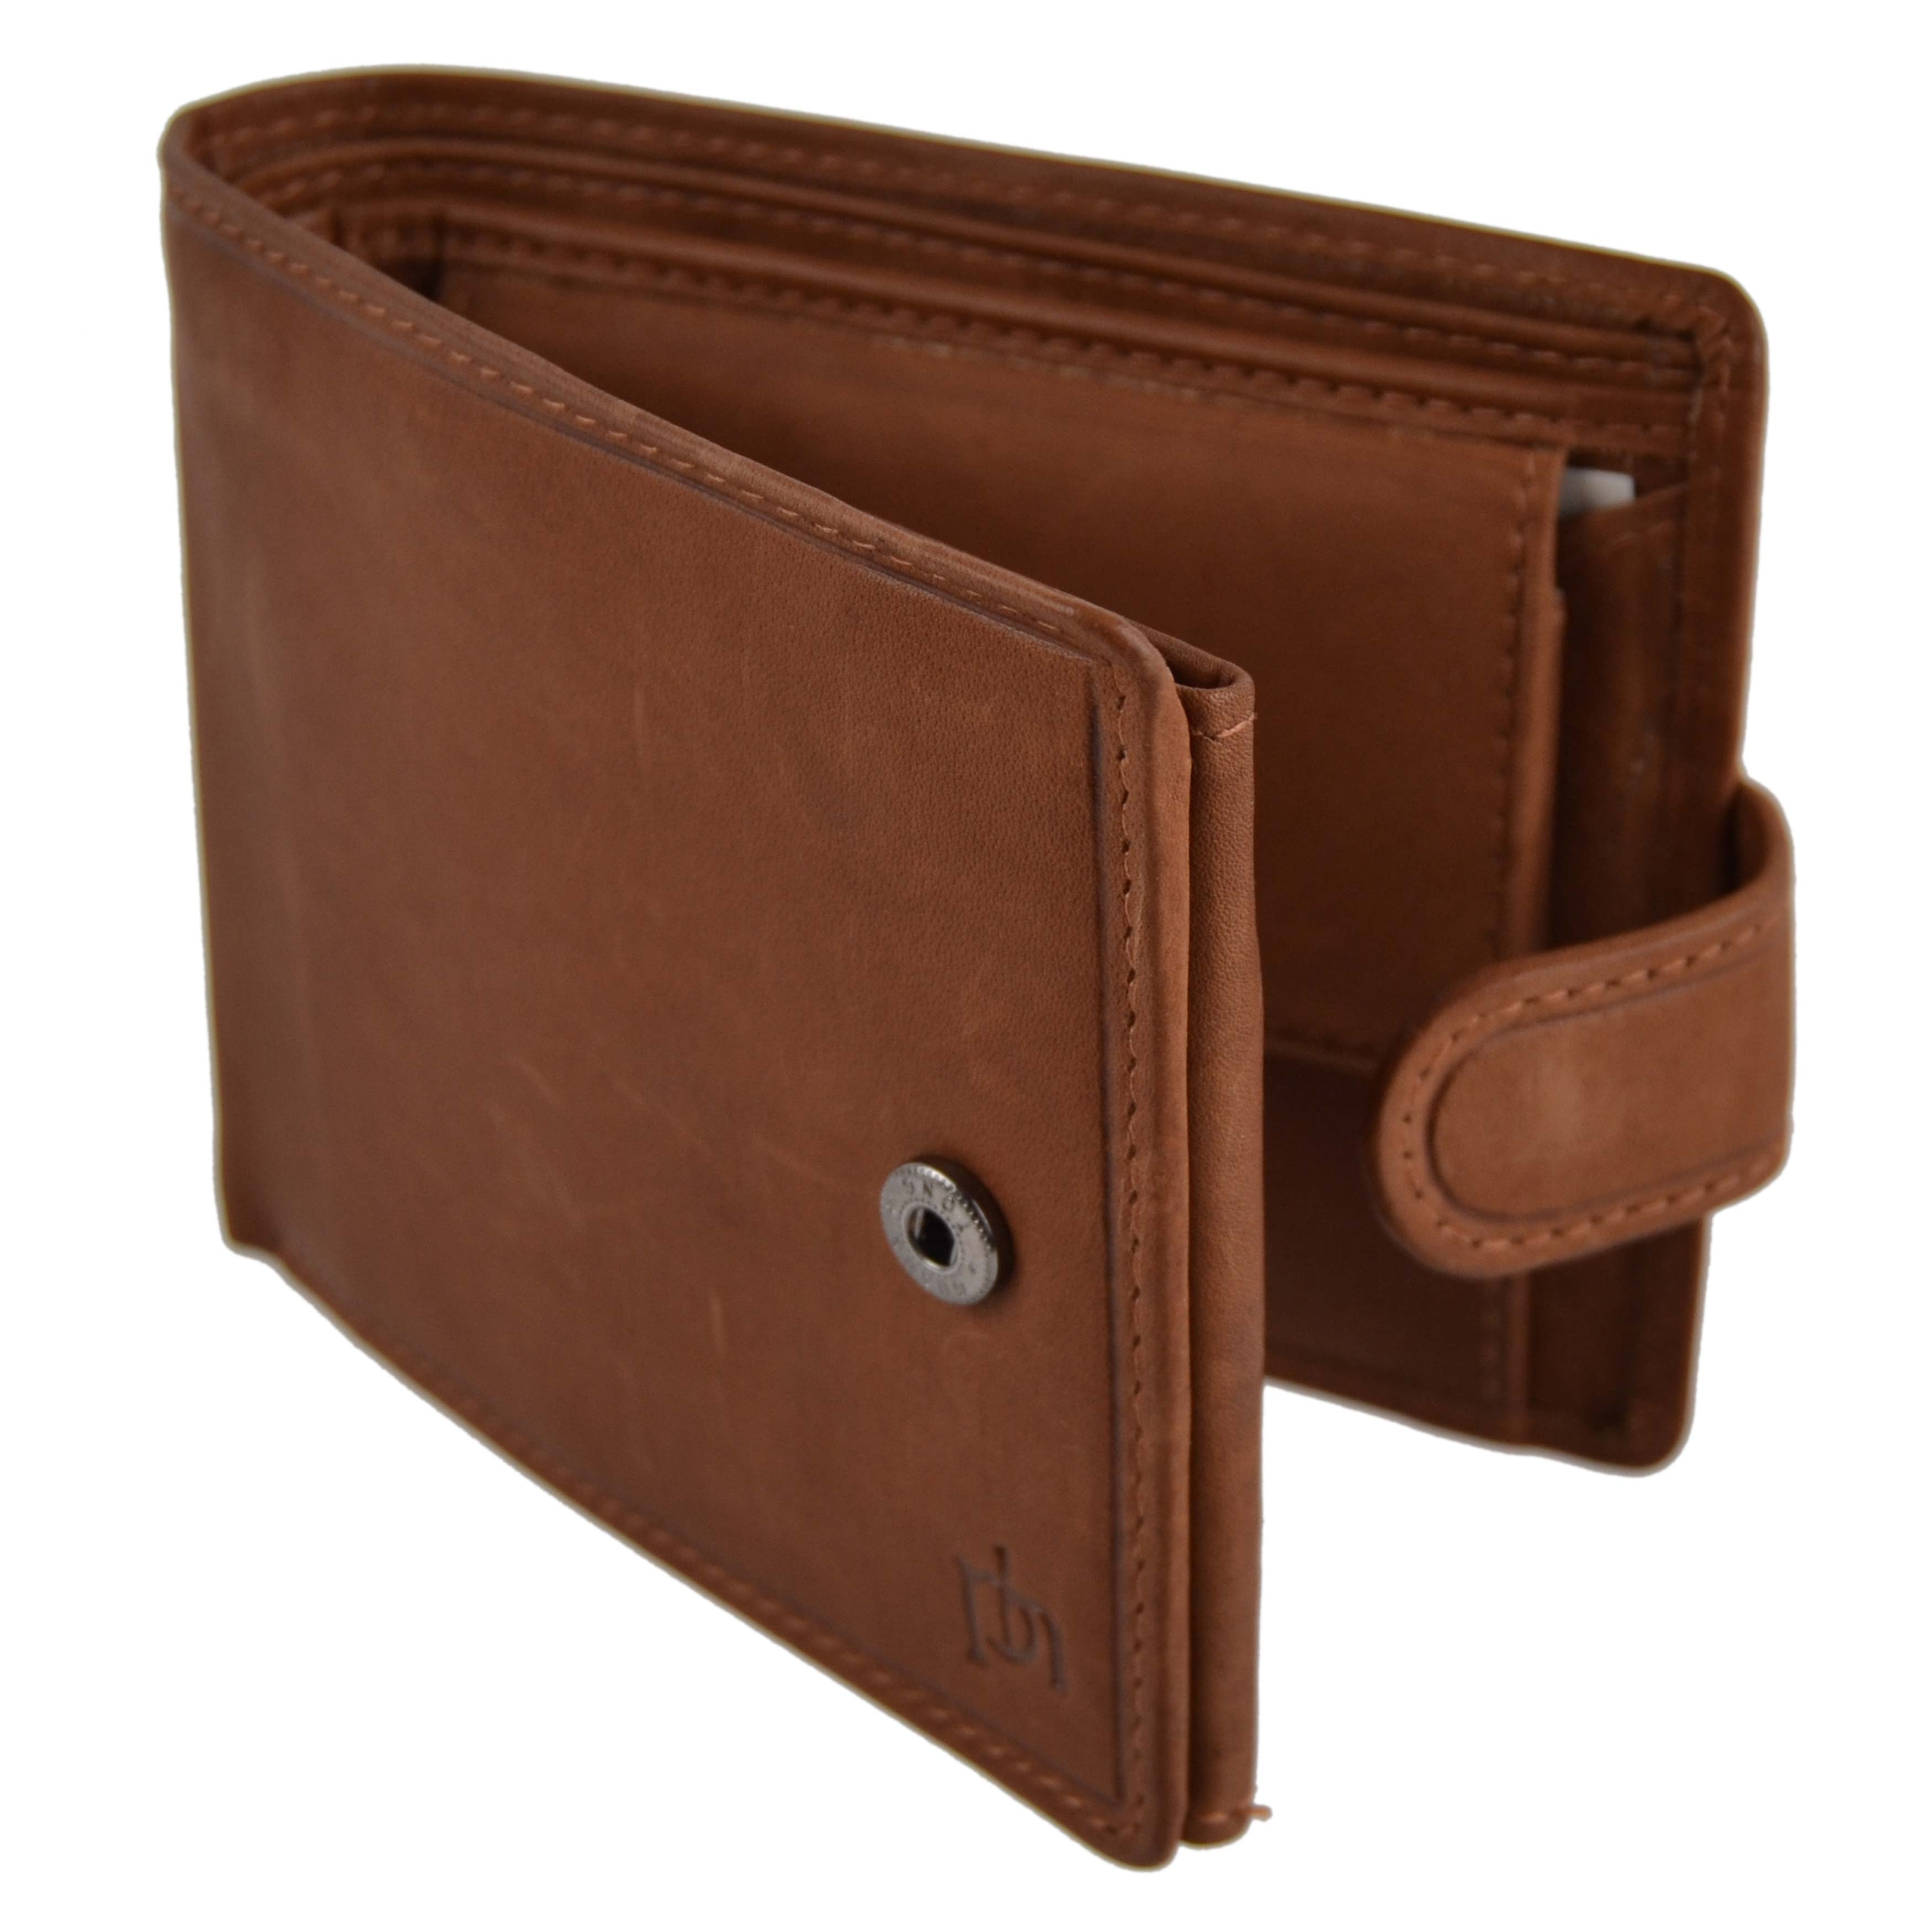 Mens-Quality-Leather-Wallet-by-Prime-Hide-Gift-Boxed-Stylish-with-Coin-Pocket thumbnail 17